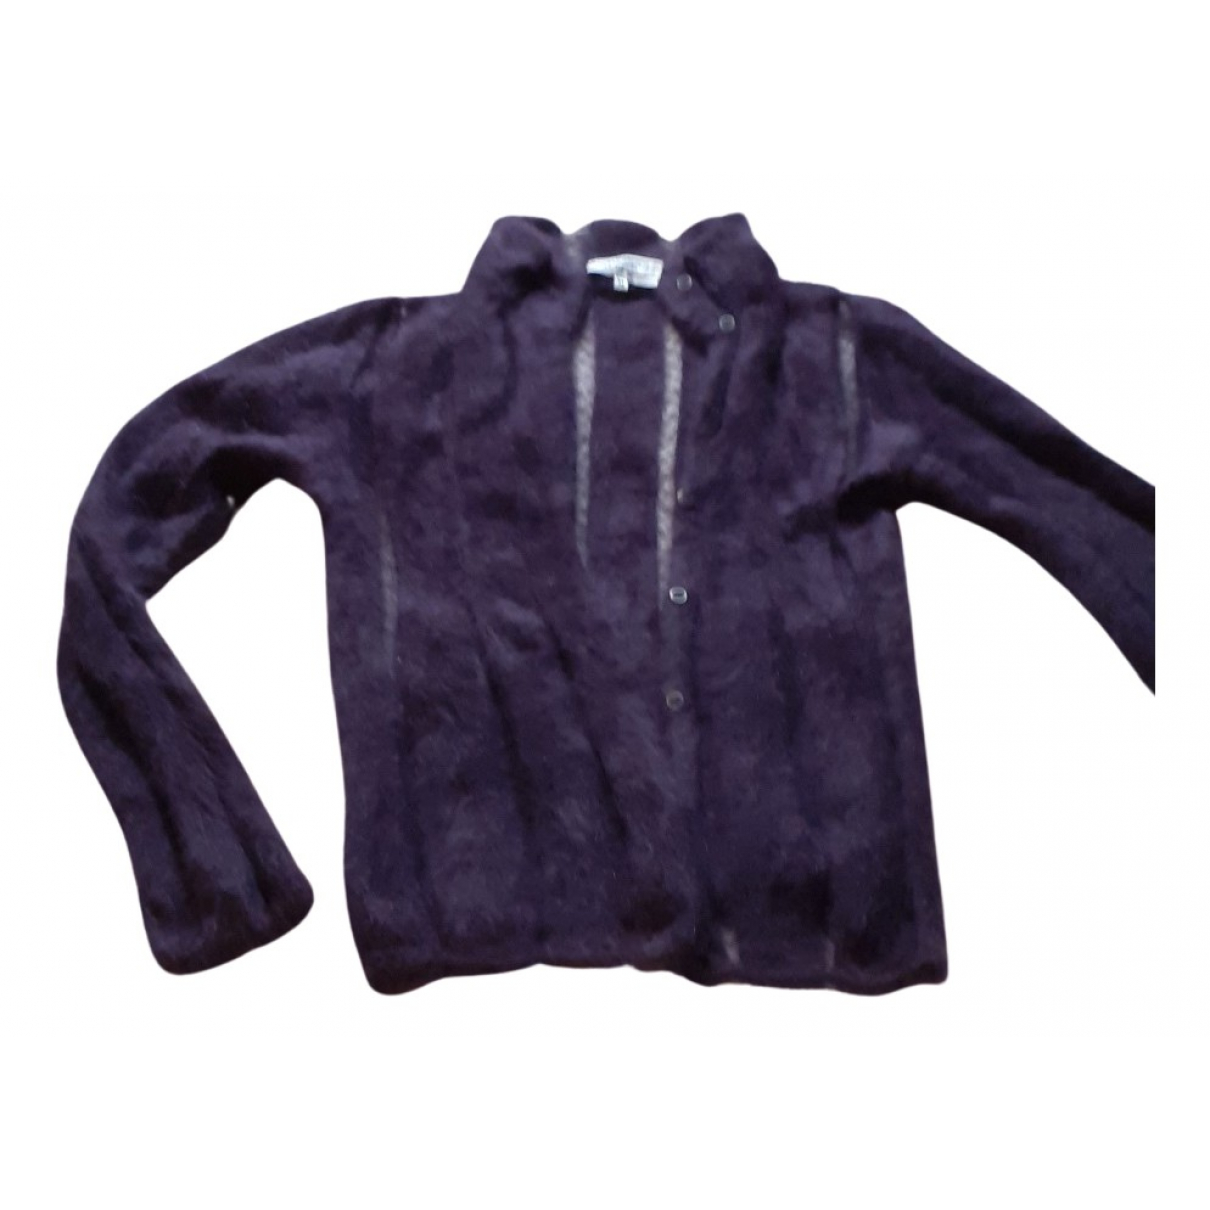 Yves Saint Laurent \N Pullover in  Lila Wolle